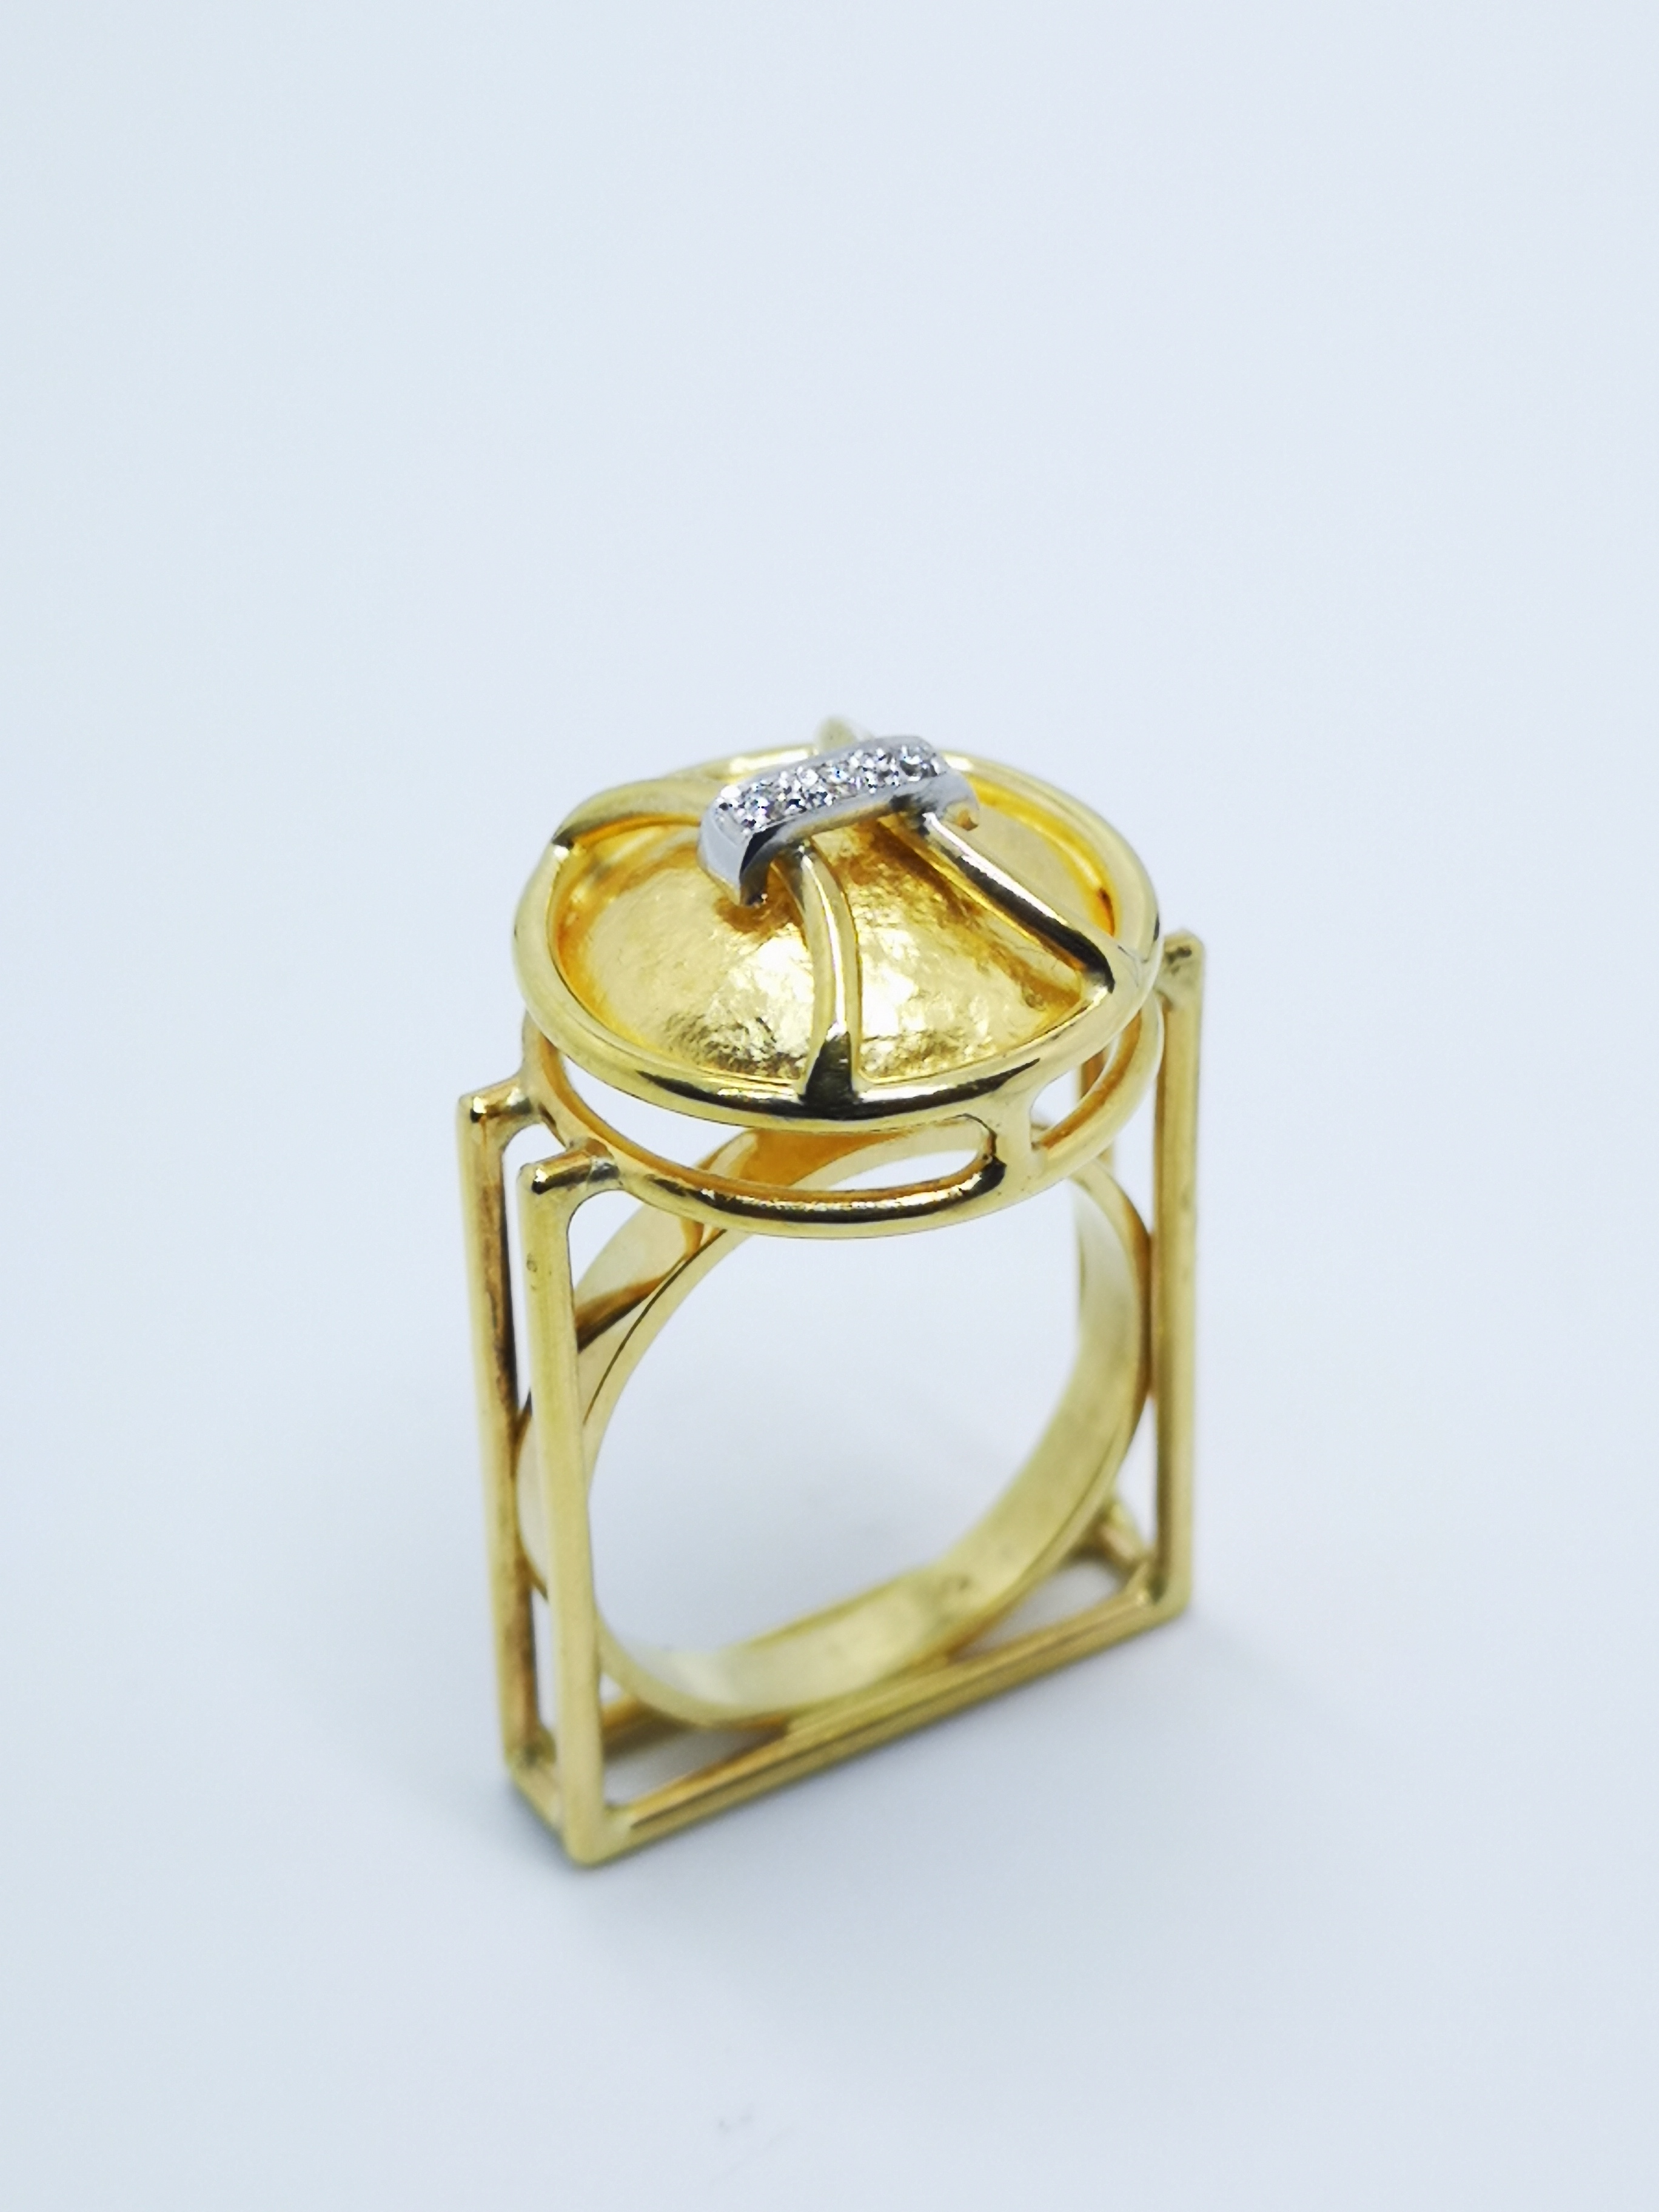 Ring in 24kt & 18kt with brilliant diamonds